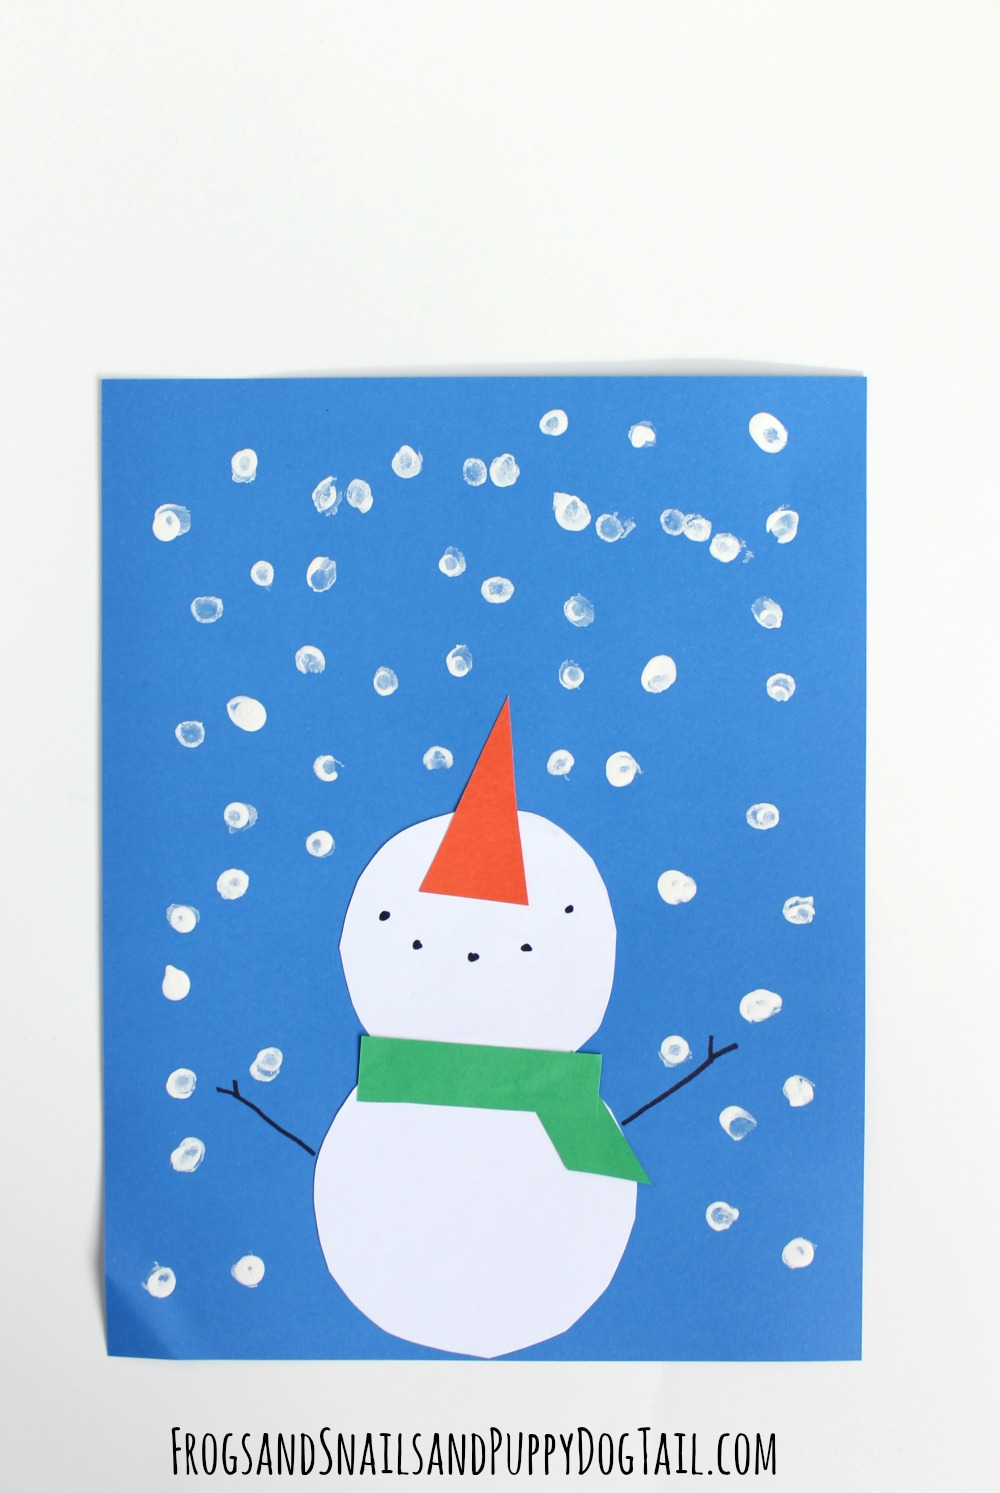 Snowman Making Kit Craft